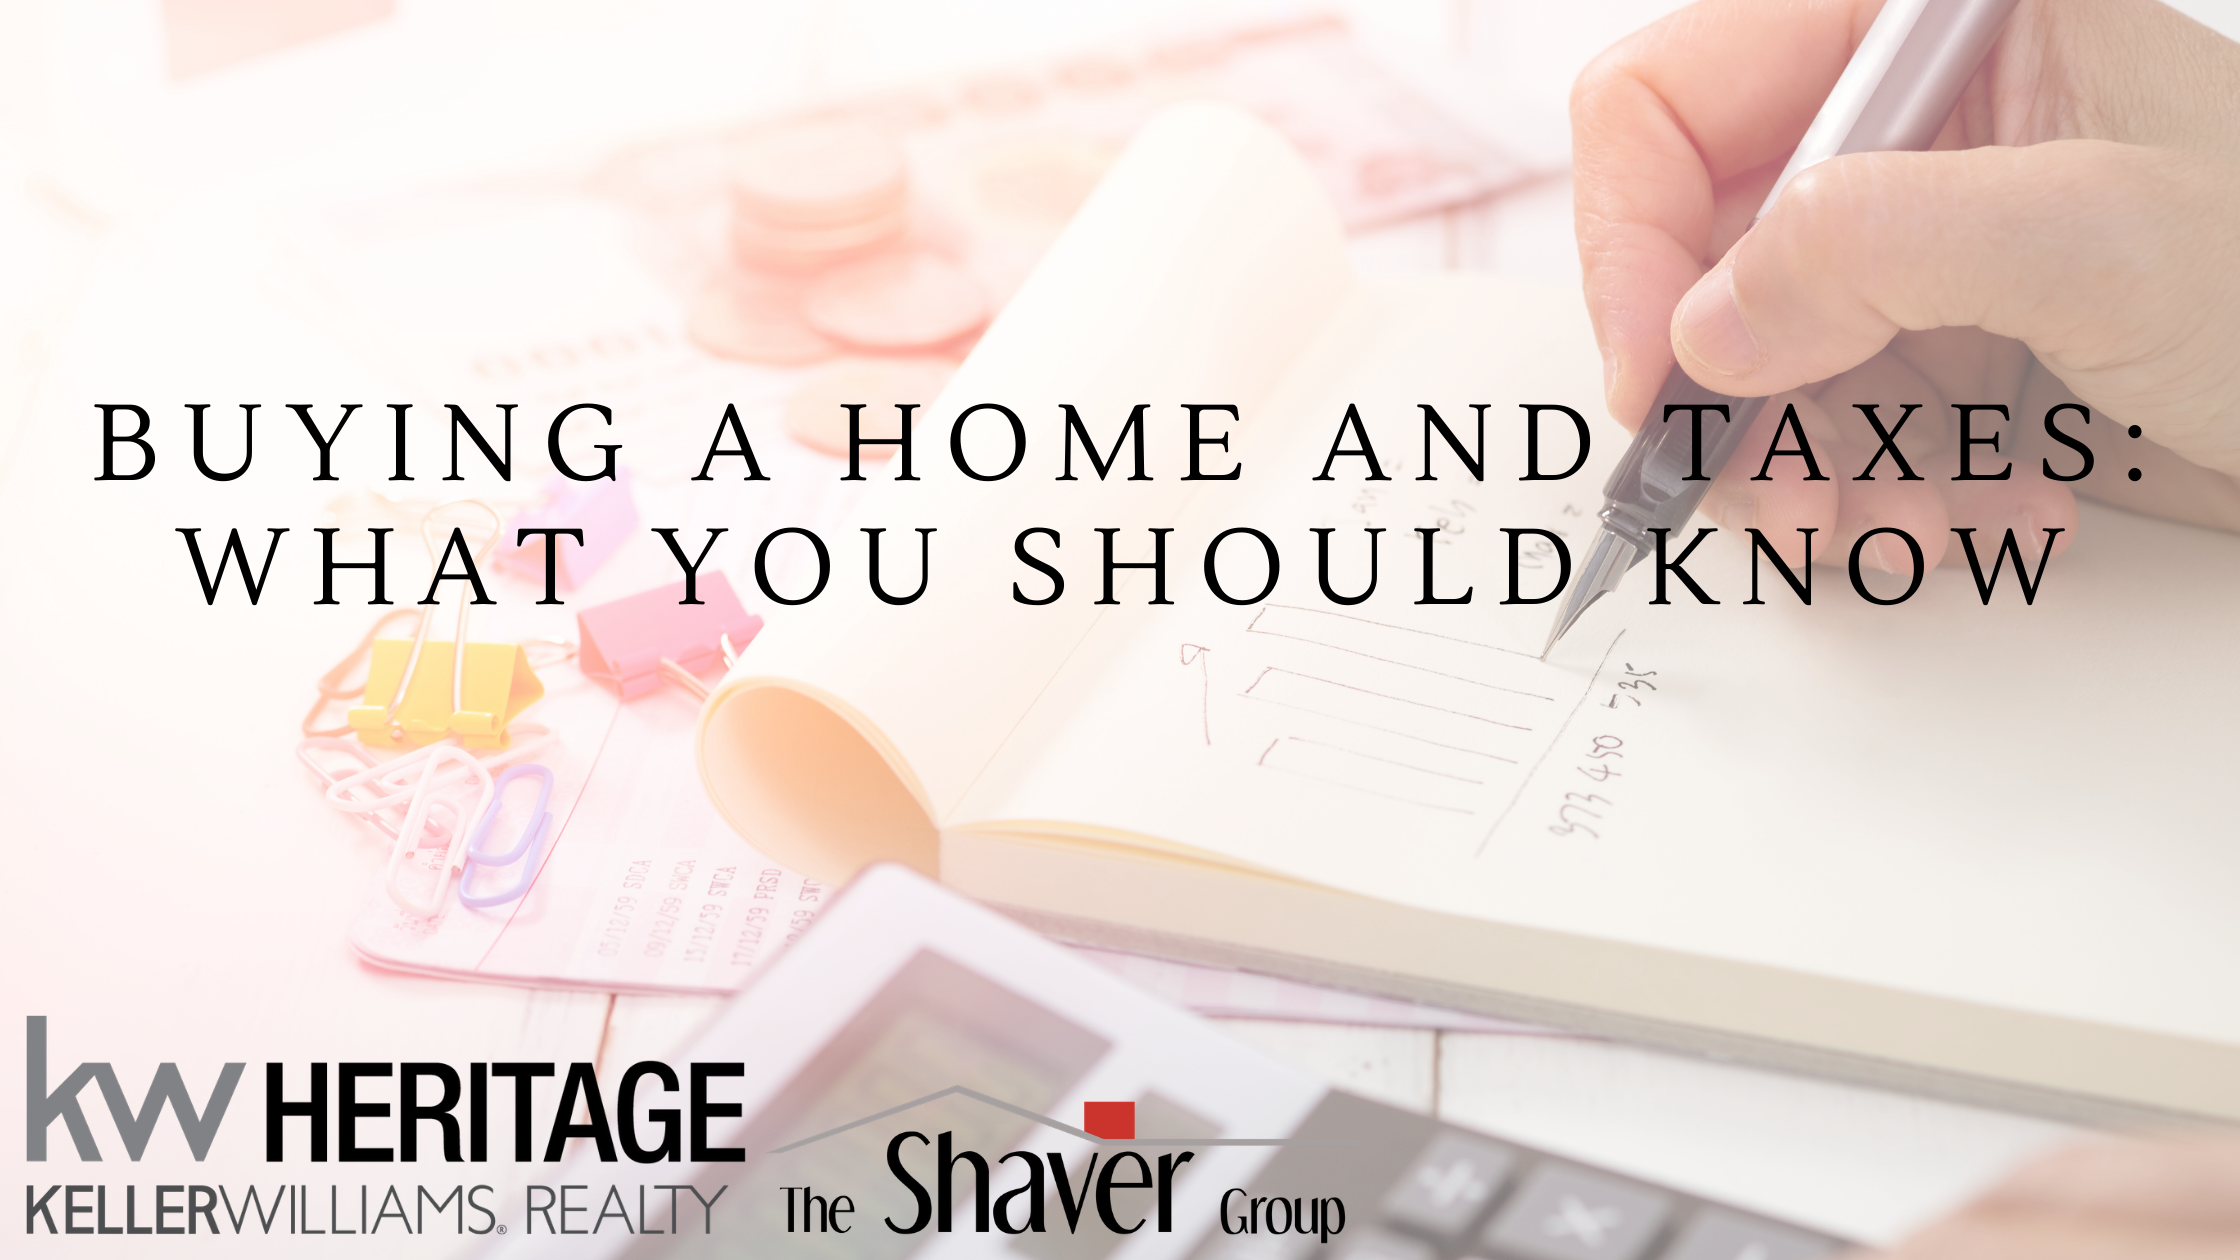 BUYING A HOME AND TAXES: WHAT YOU SHOULD KNOW